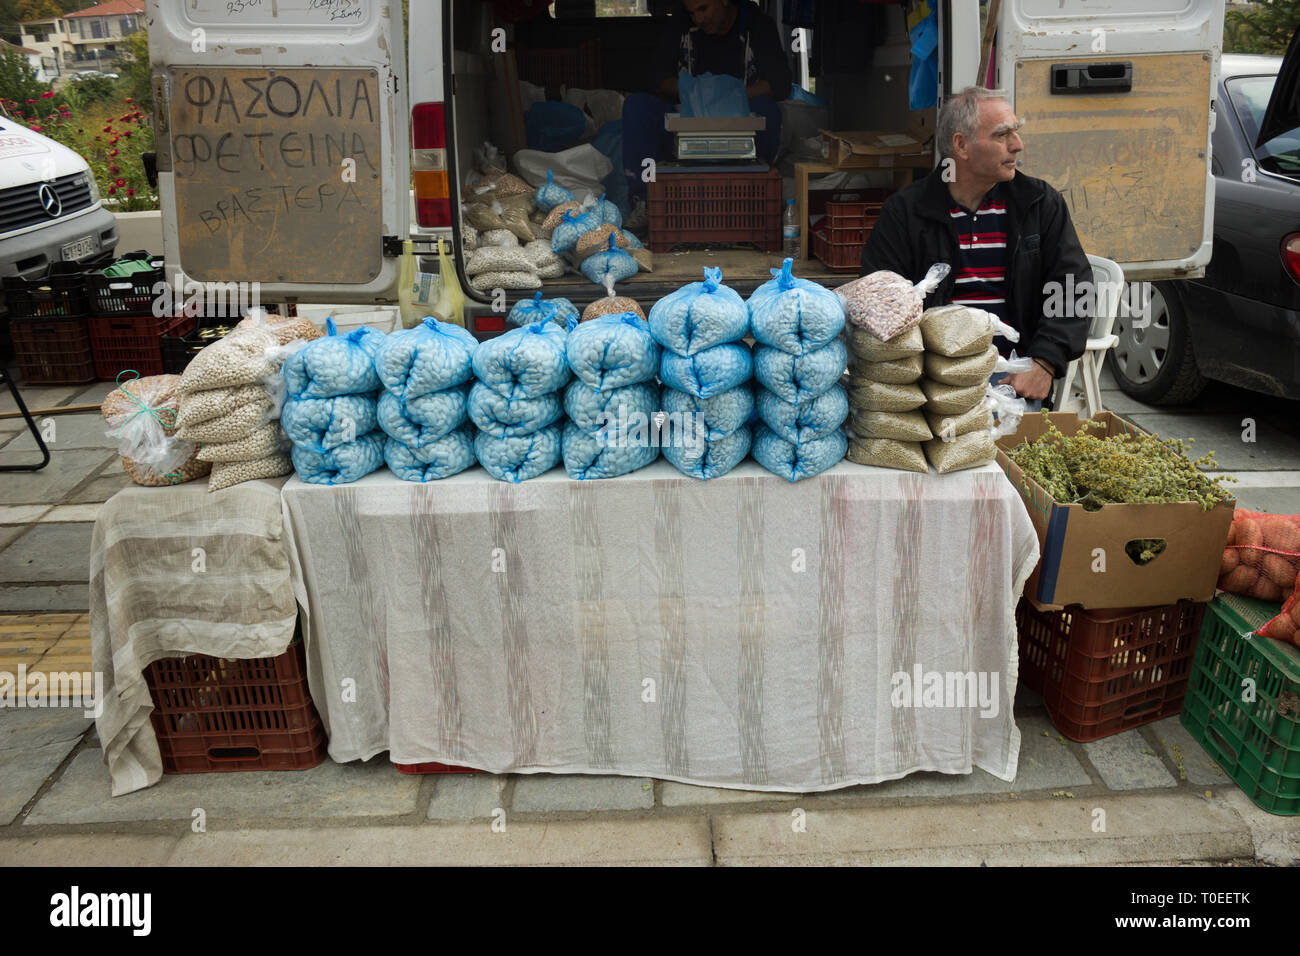 Greek stallholder sitting on a chair awaiting to sell his butter beans harvest to customers at the annual chestnuts festival. Leivadi, Greece - Stock Image